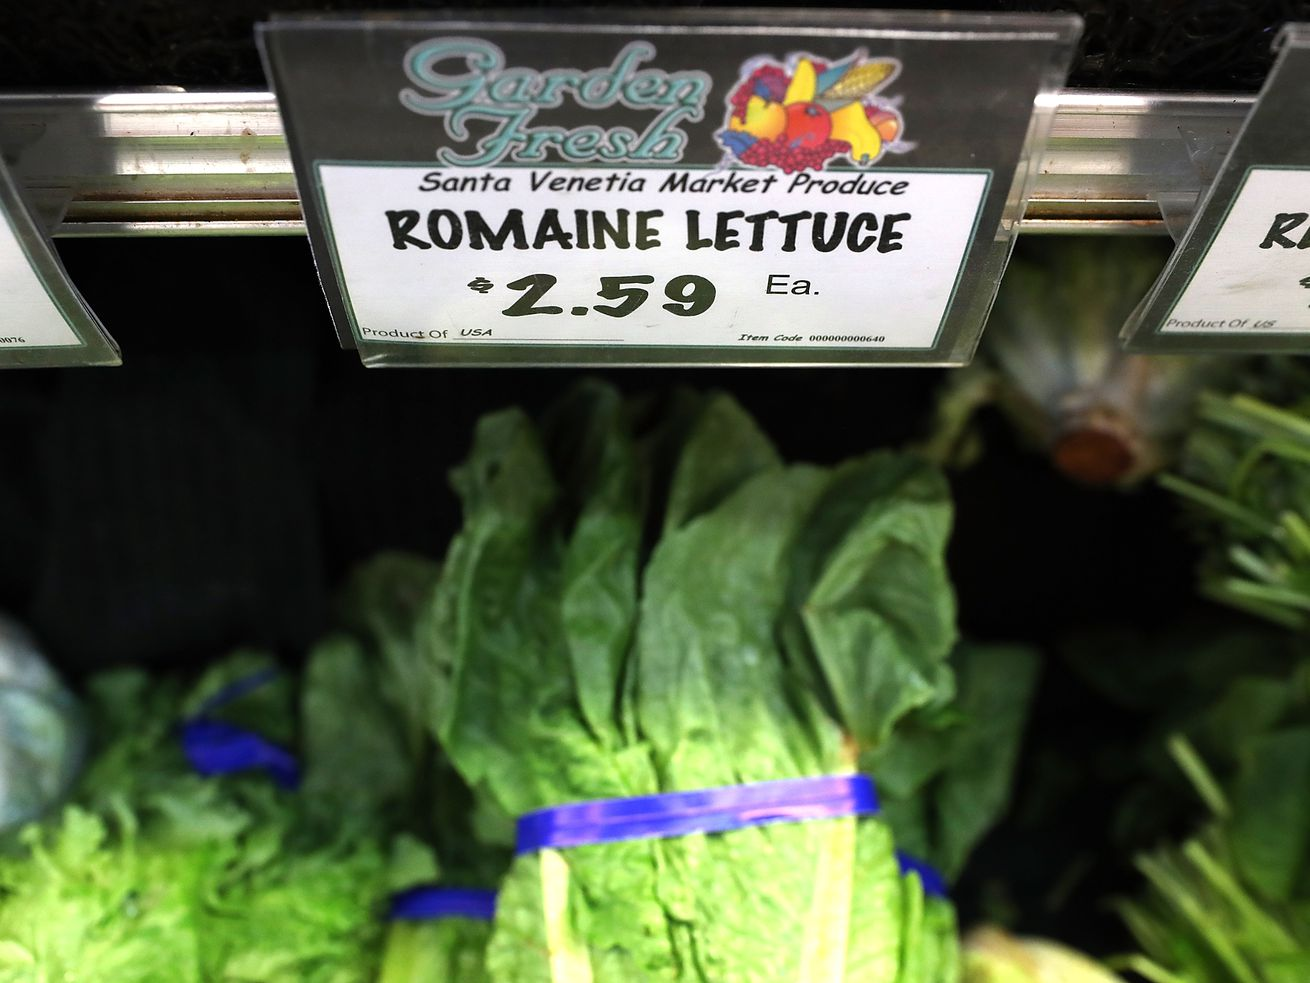 Romaine lettuce was identified to be the source of an E. coli outbreak that concluded January 9.